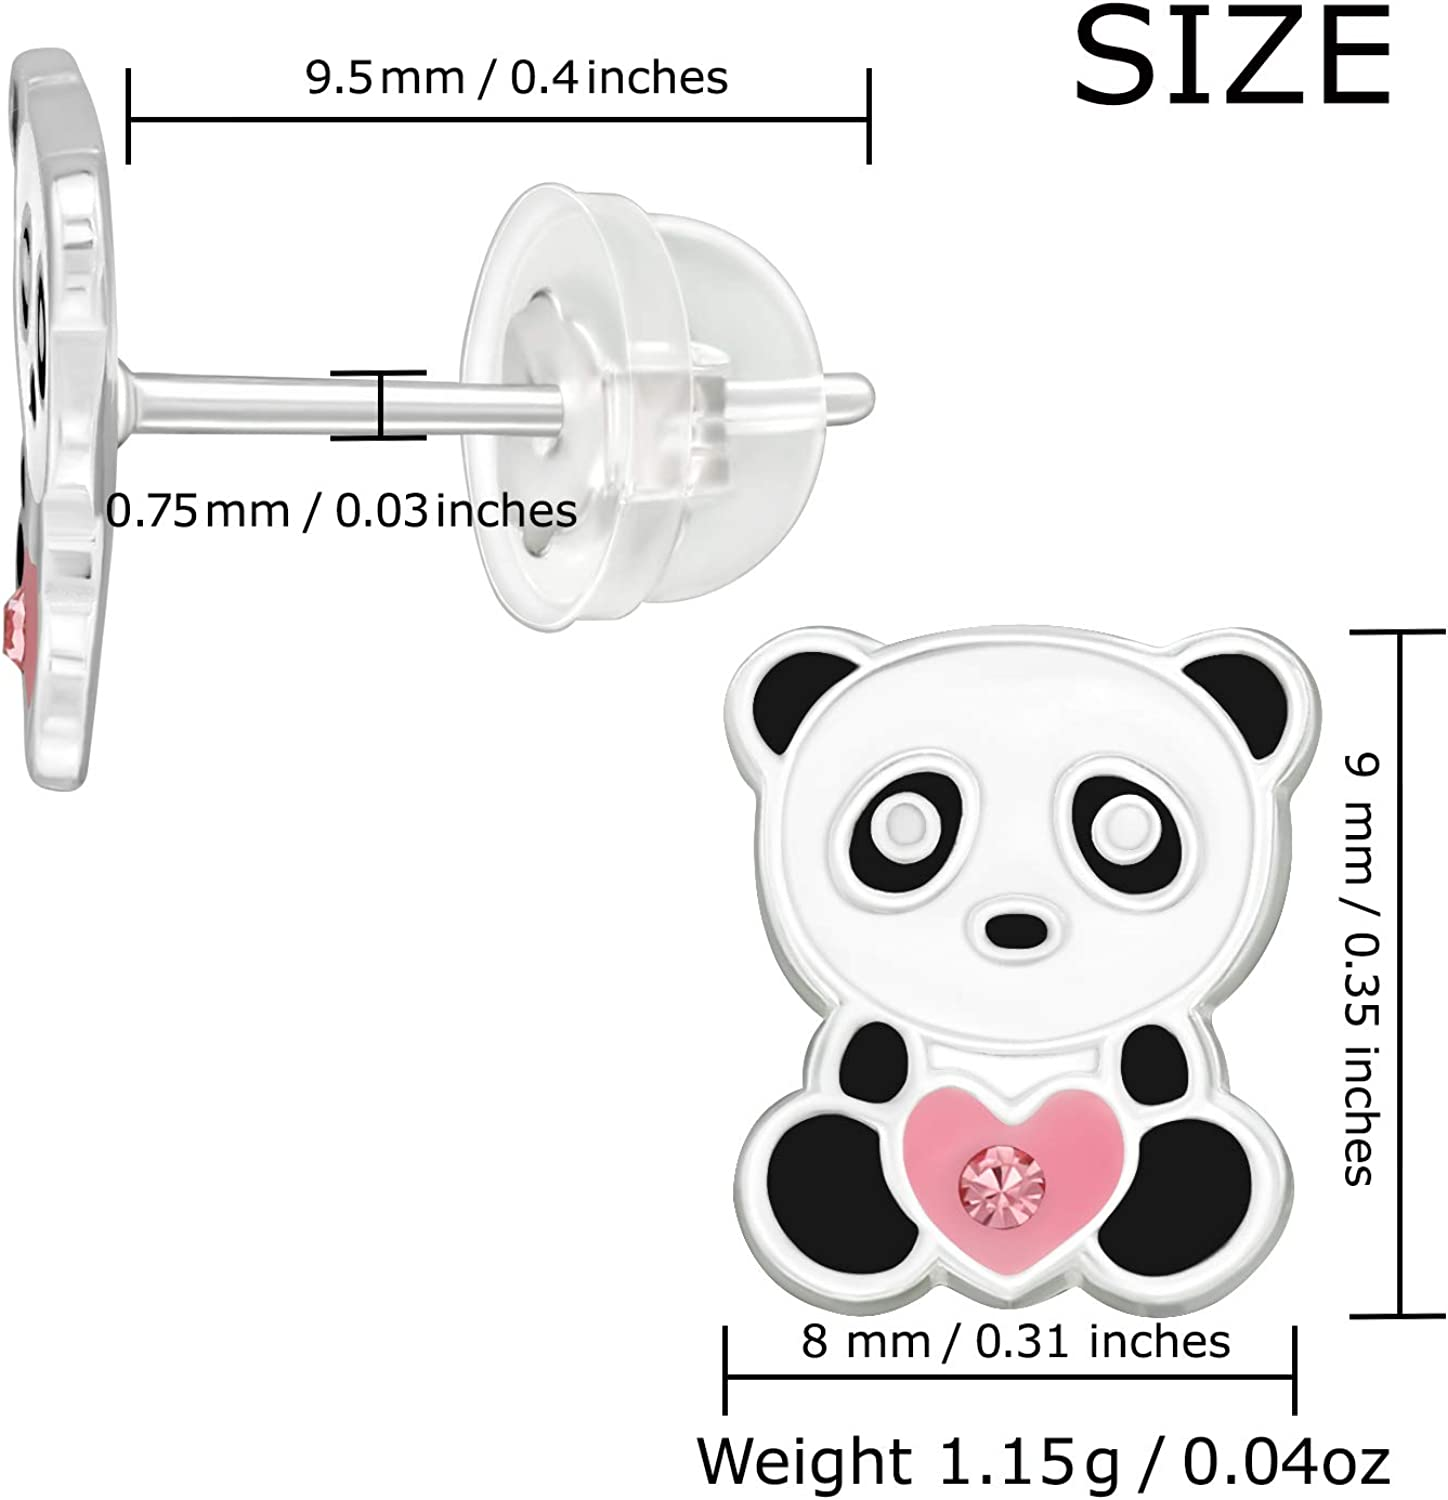 AUBE JEWELRY Hypoallergenic 925 Sterling Silver Panda Holding a Heart Stud Earrings Adorned with Crystals with Silicone Coated Push Backs for Girls and Women